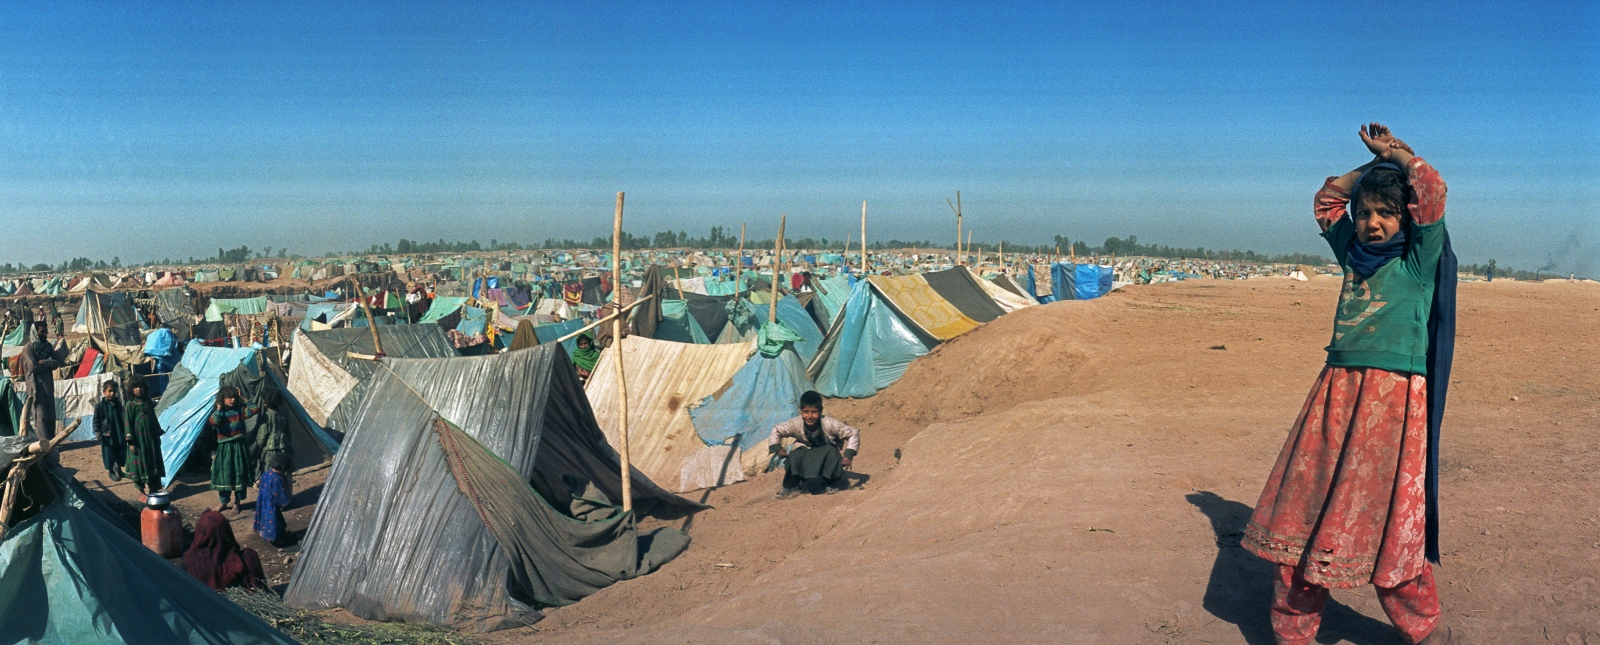 At Jalozai refugee camp, just over the border in Pakistan, grimy plastic sheets and rancid-smelling cloth are their only shelter.